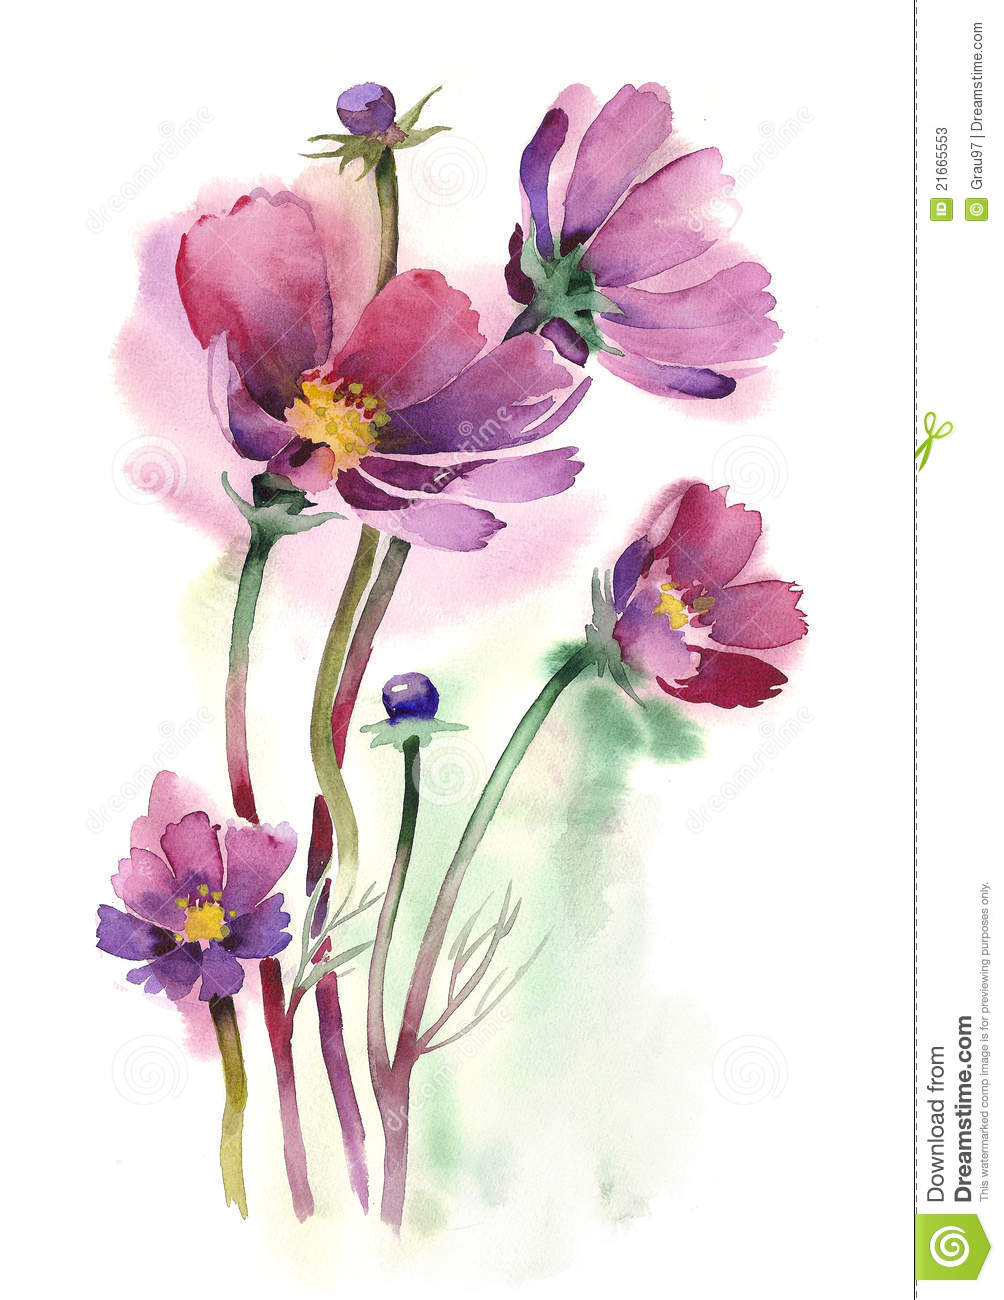 Watercolor cosmos flowers stock illustration for Watercolor flower images